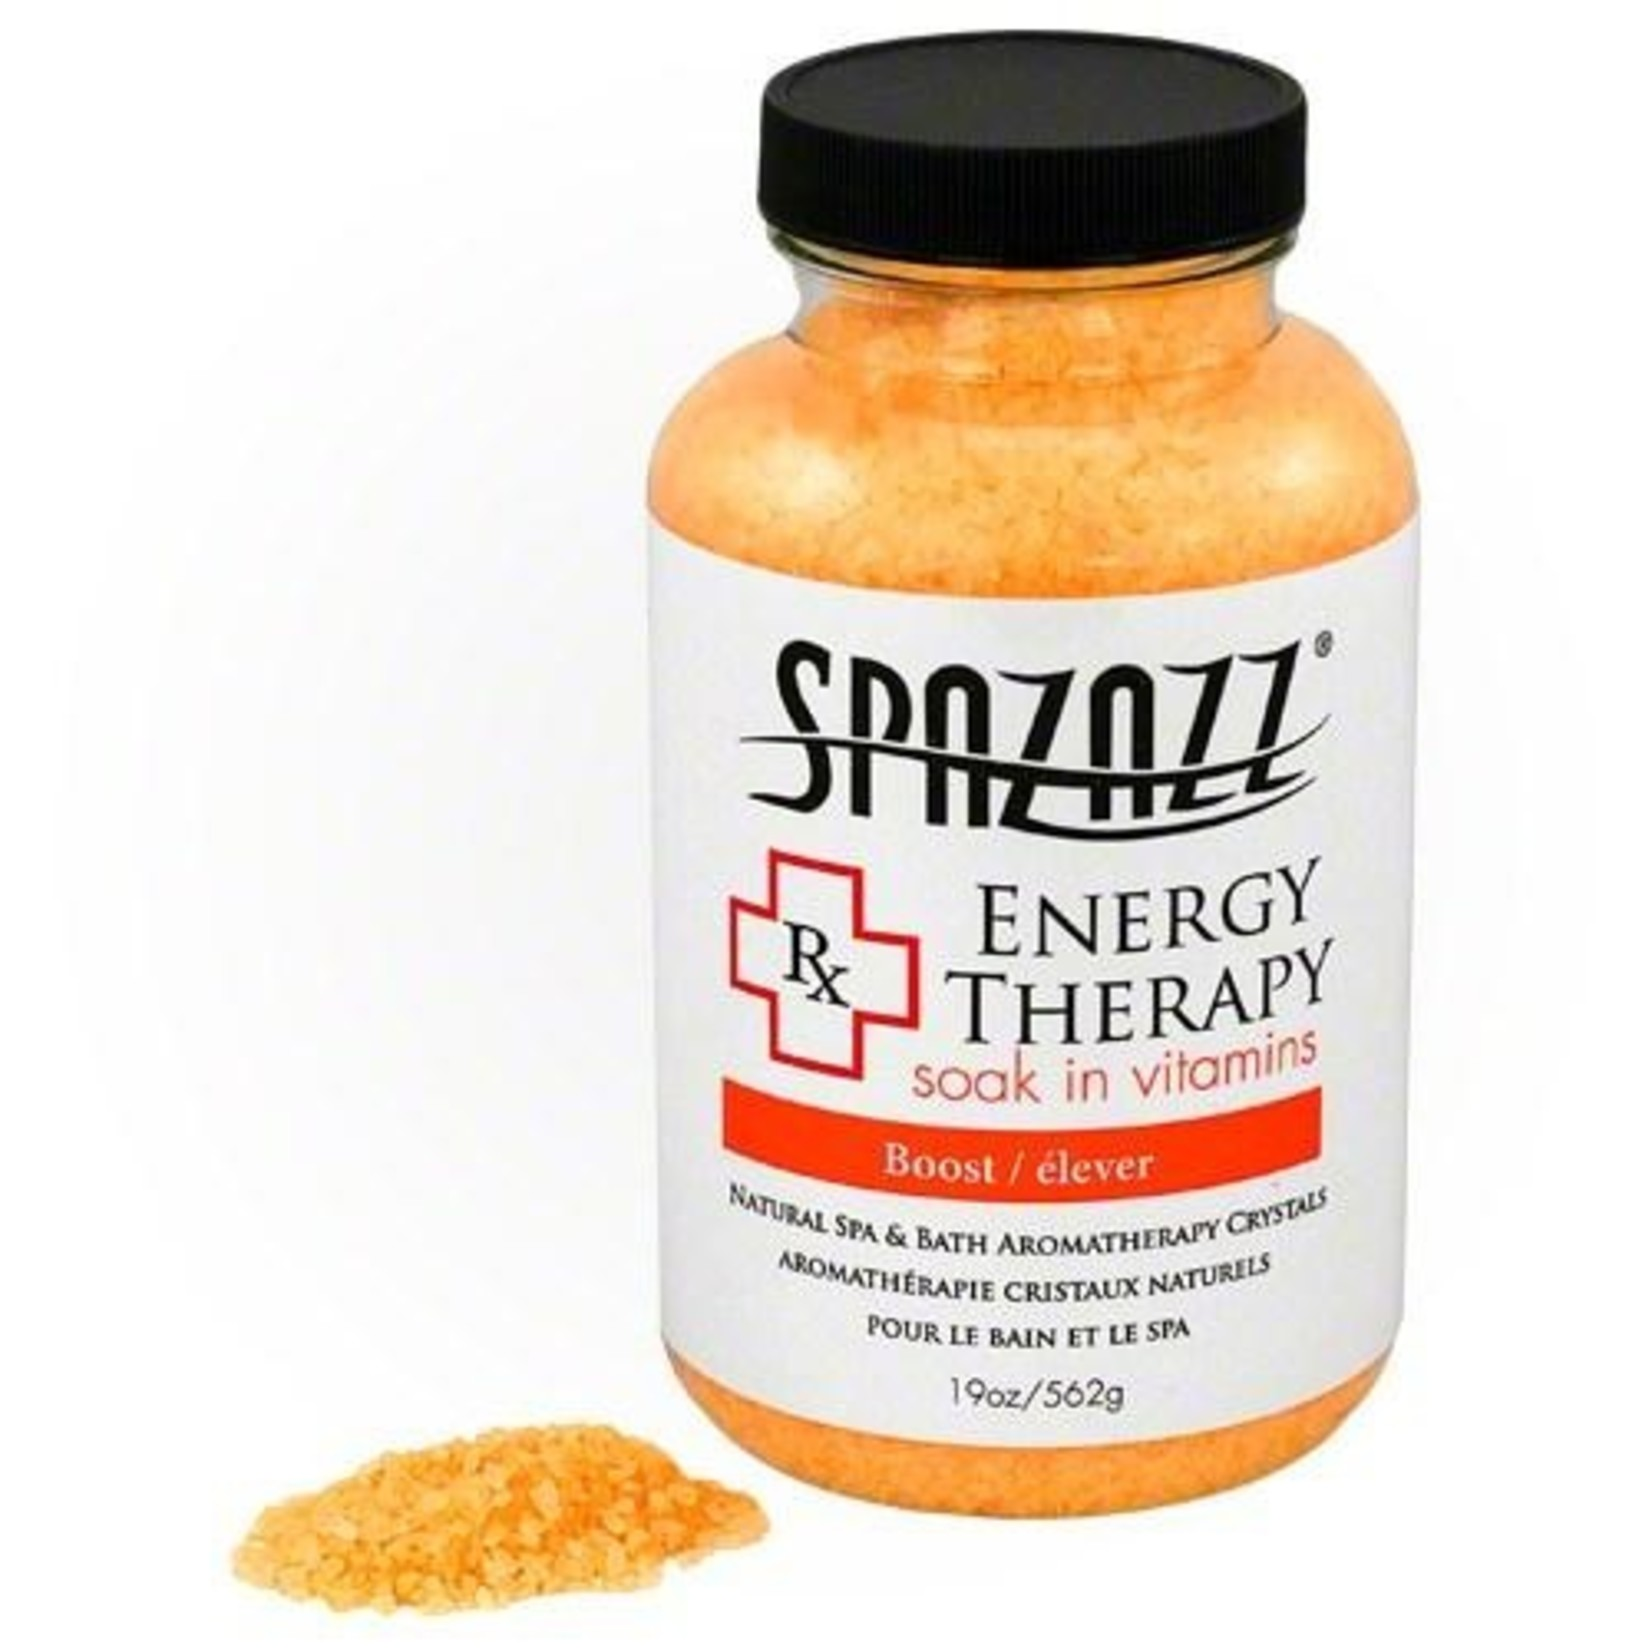 Spazazz Rx Therapy Crystals - Energy Therapy (562 g)